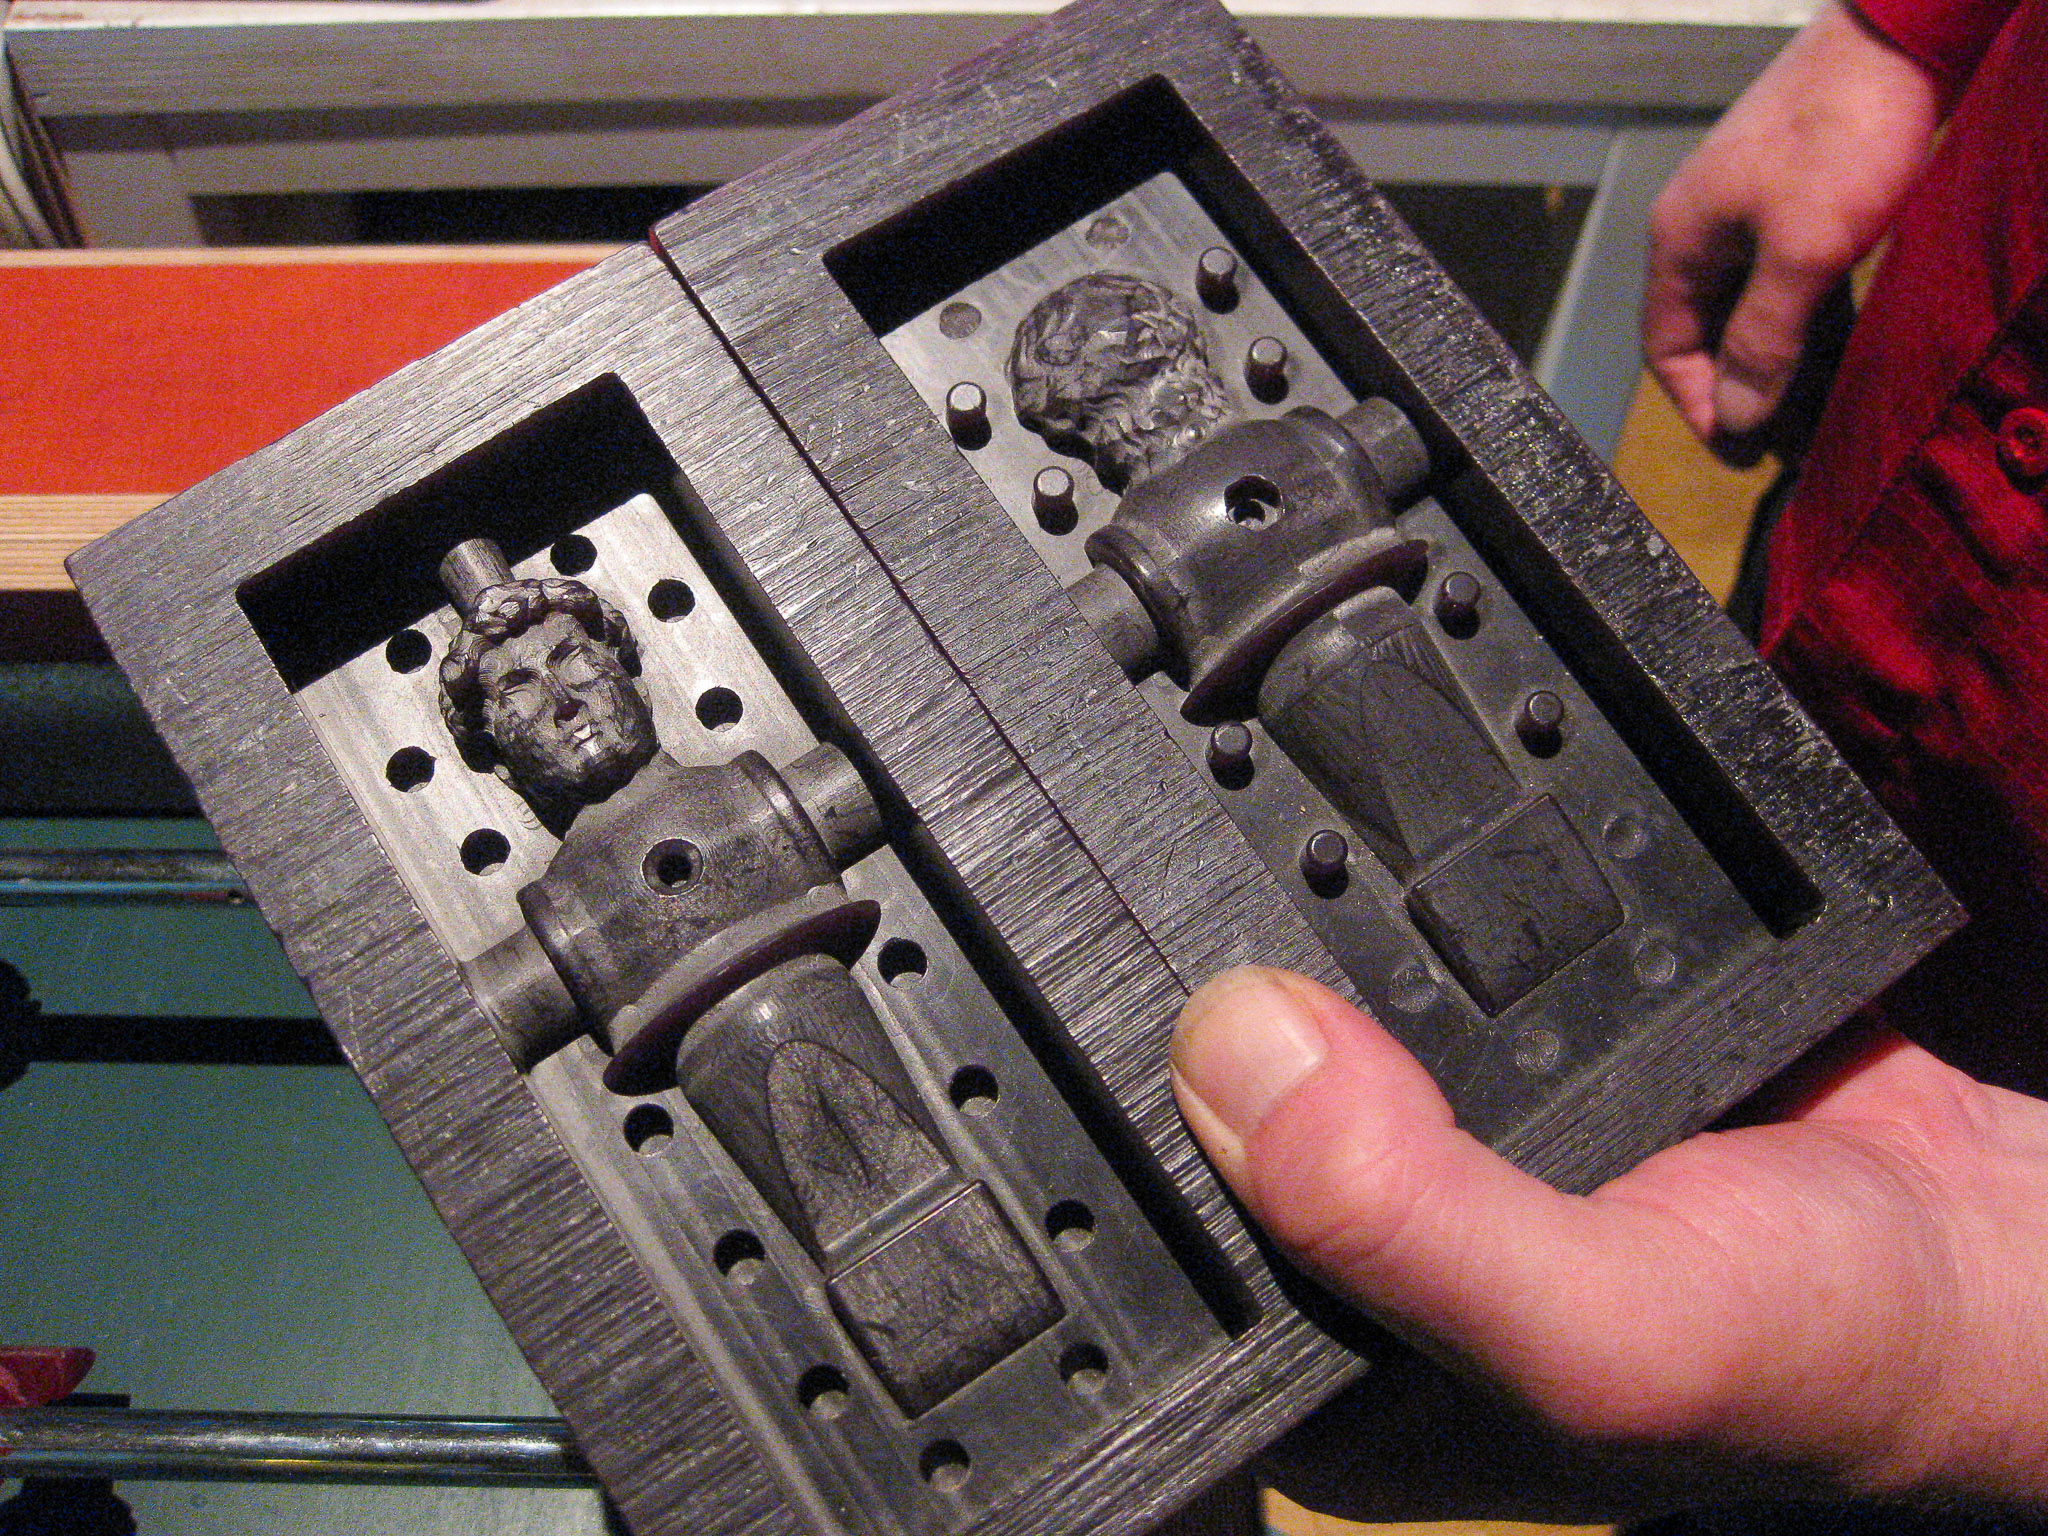 photograph of CNC routered moulds for casting players for a fooseball game